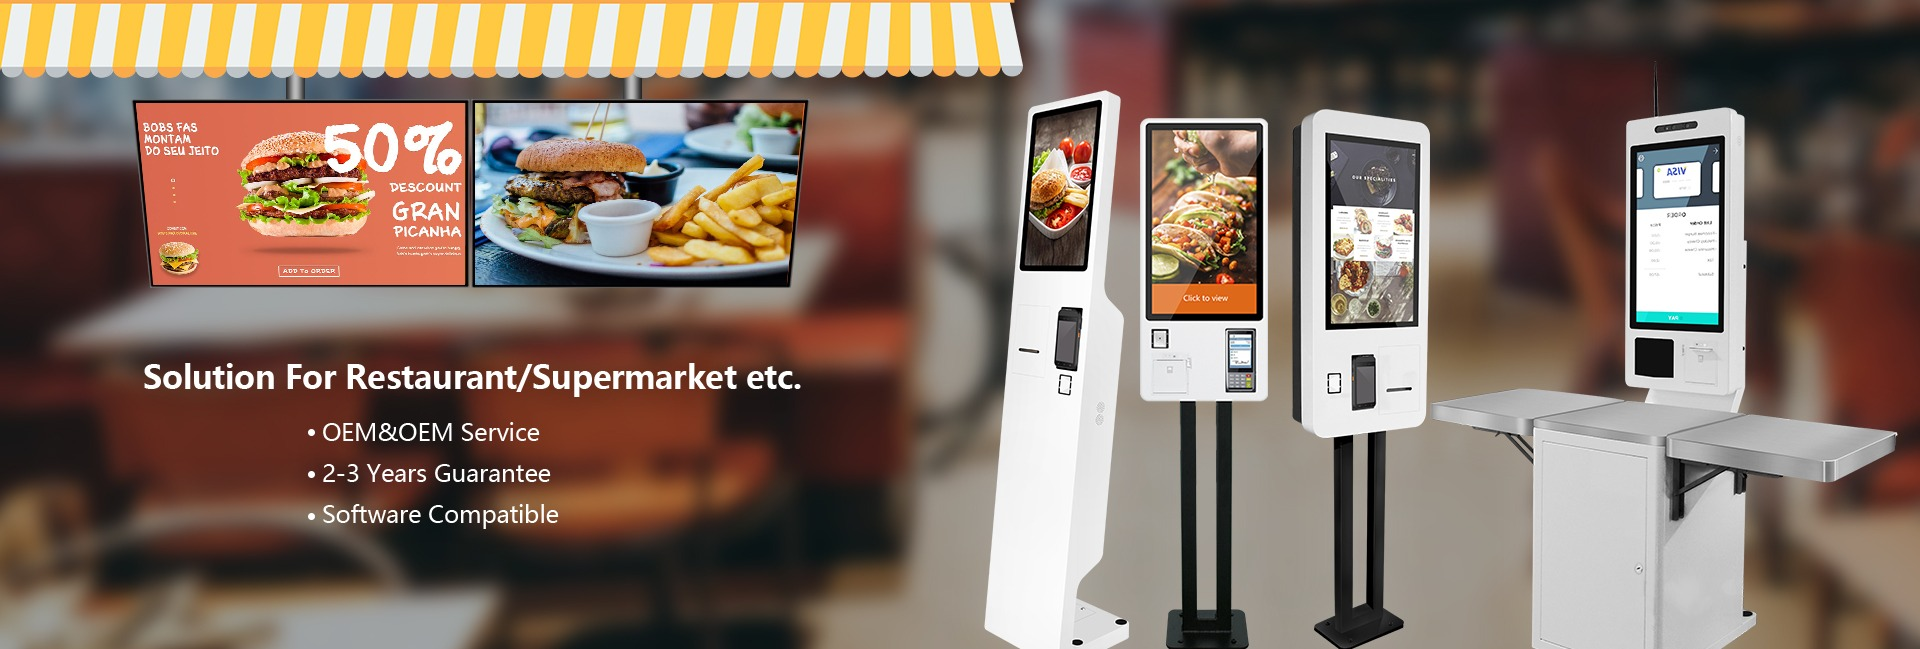 mobile pos system uk Digital Screens and self order kiosk